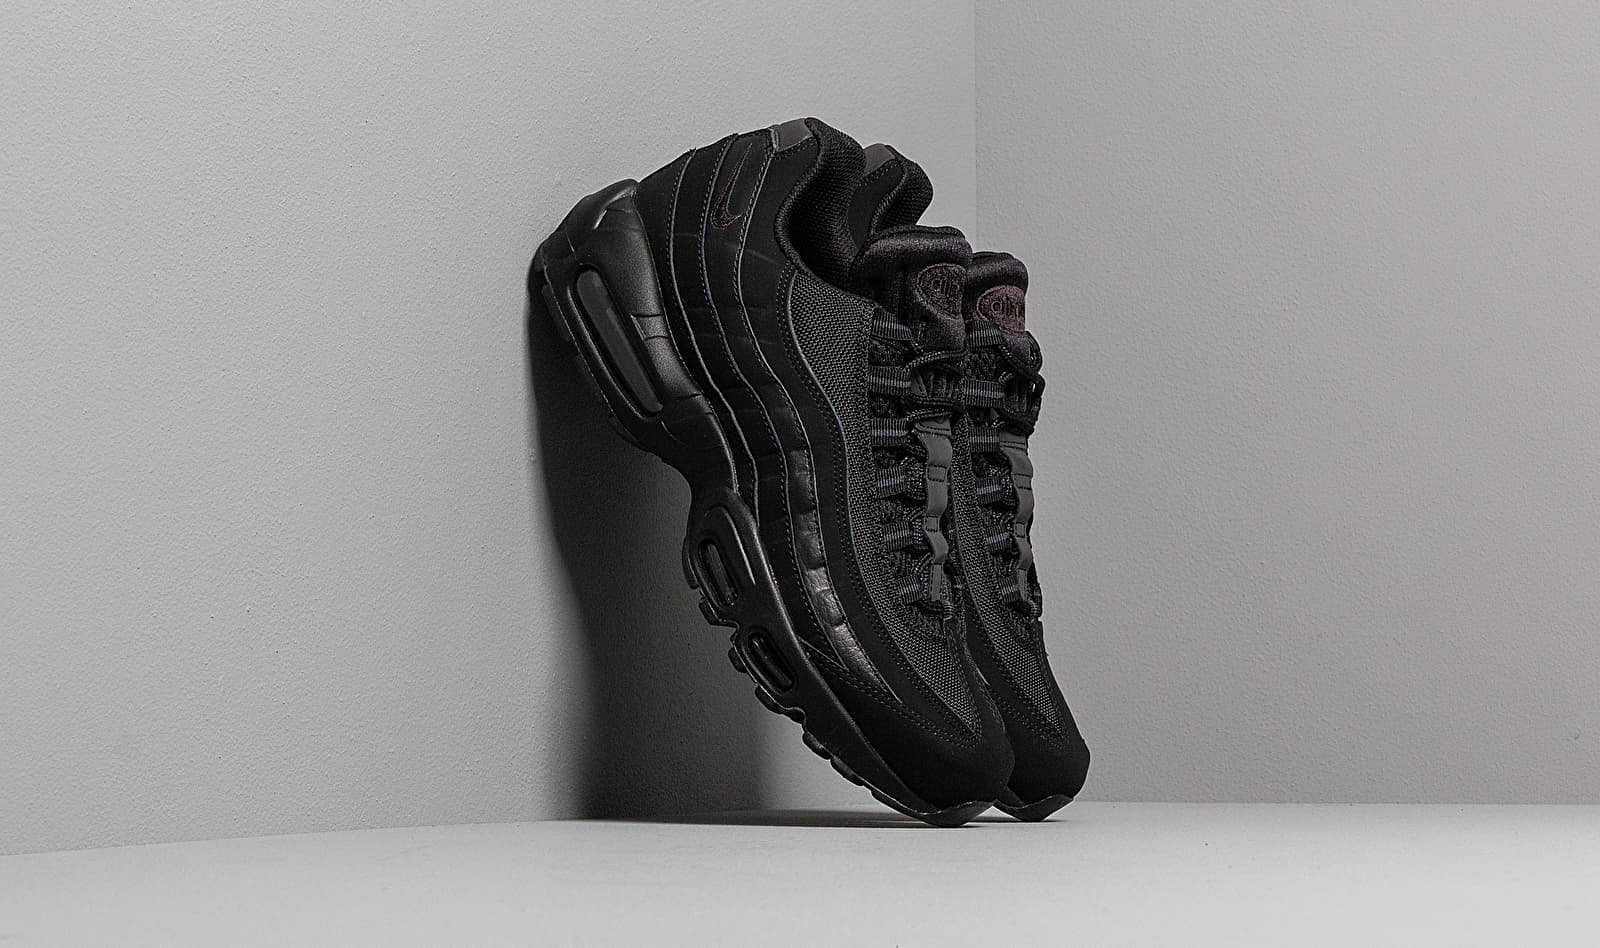 Nike Air Max '95 Black/ Black-Anthracite EUR 46